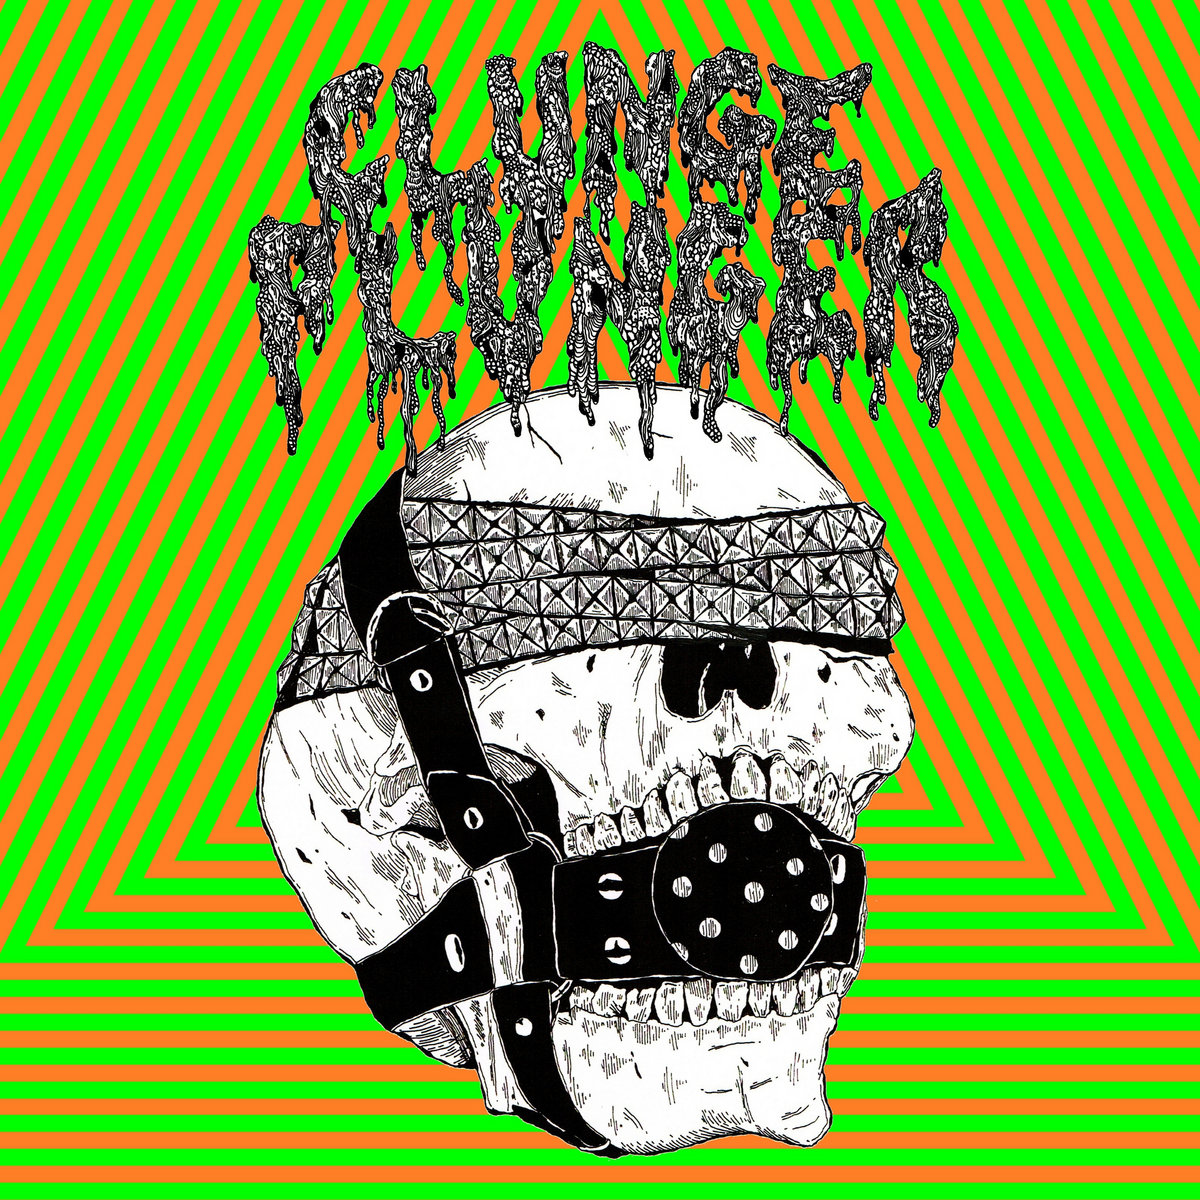 Clunge Plunger - The Party Illuminati (2013)